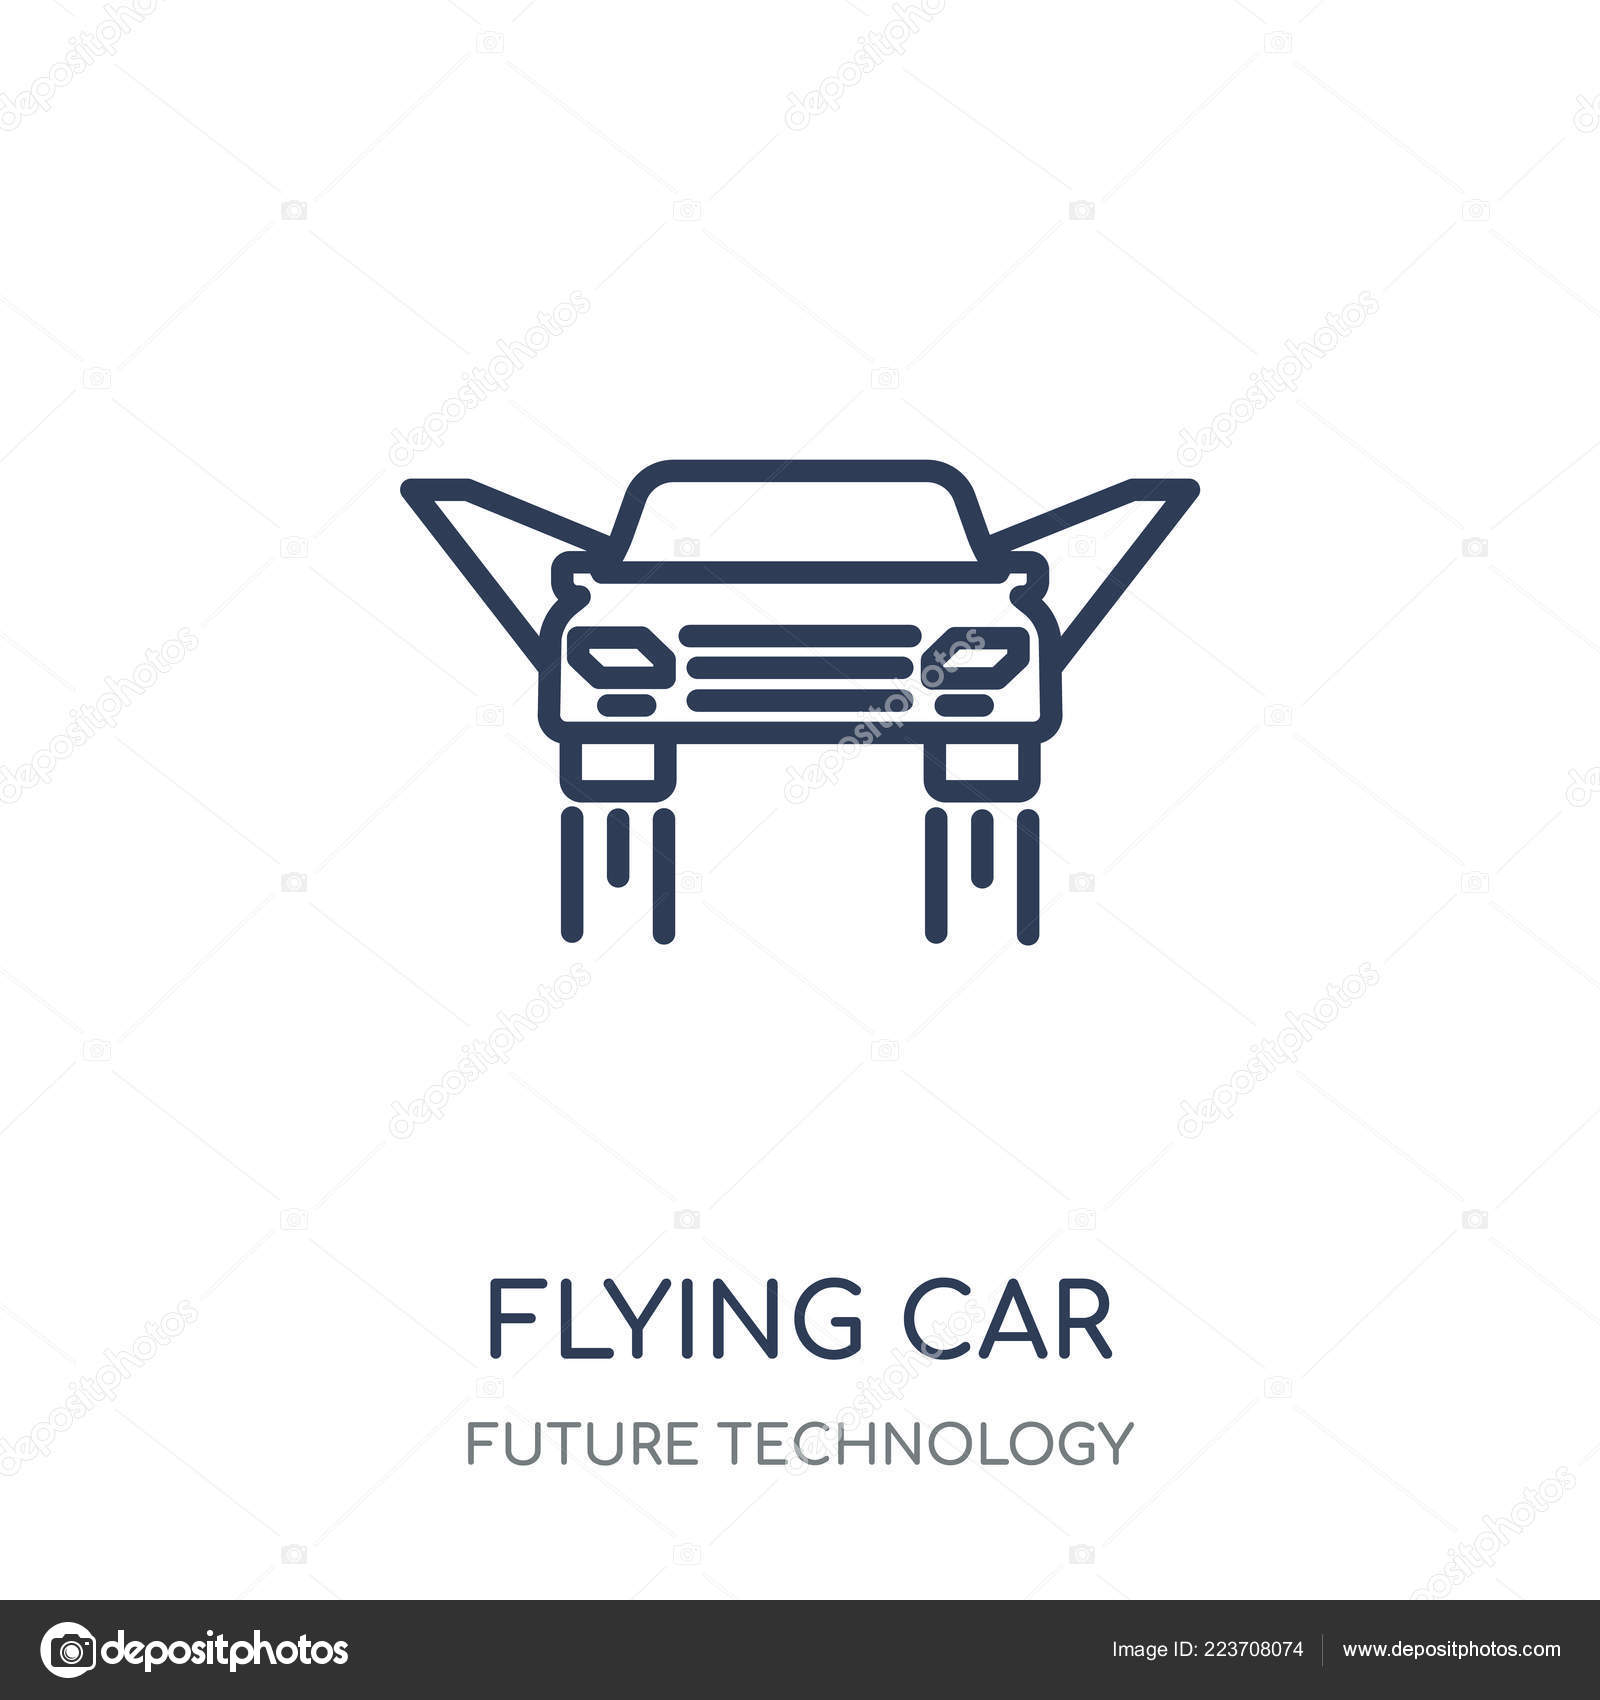 Flying Car Icon Flying Car Linear Symbol Design Future Technology Stock Vector C Coolvectorstock 223708074